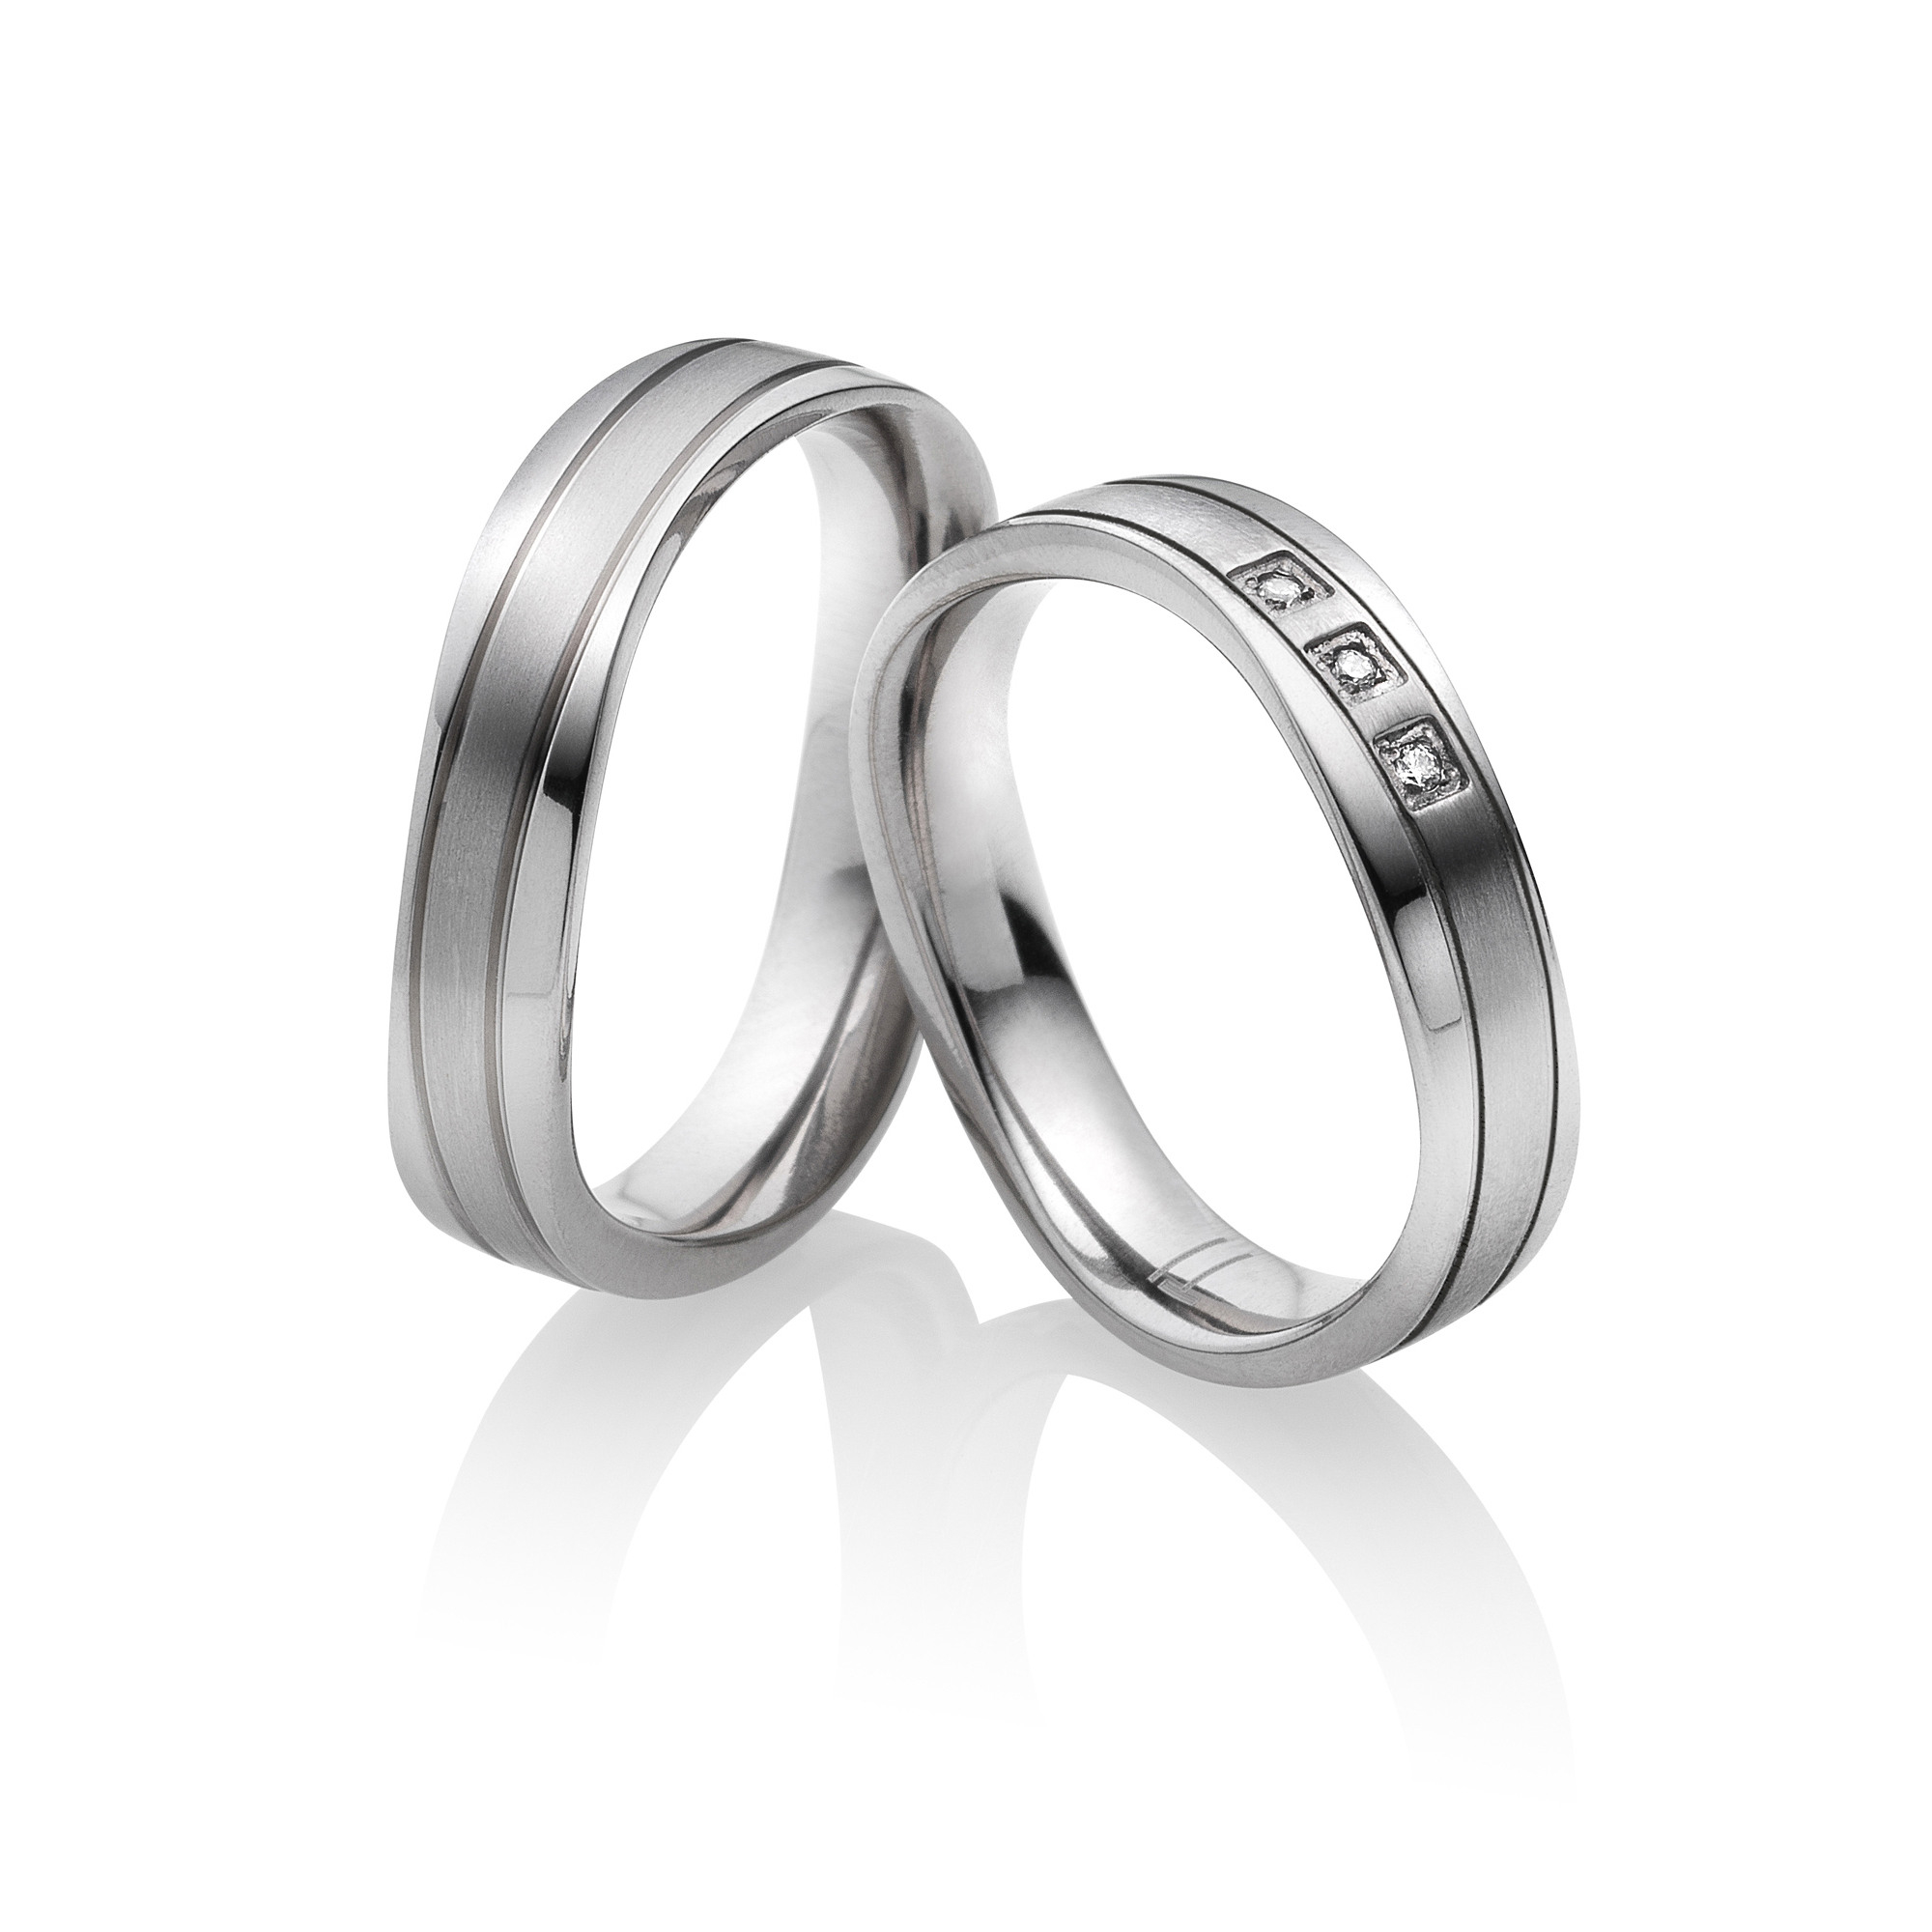 Titan Eheringe Partnerringe Adria | Miomi - Tungsten Carbide Jewelry